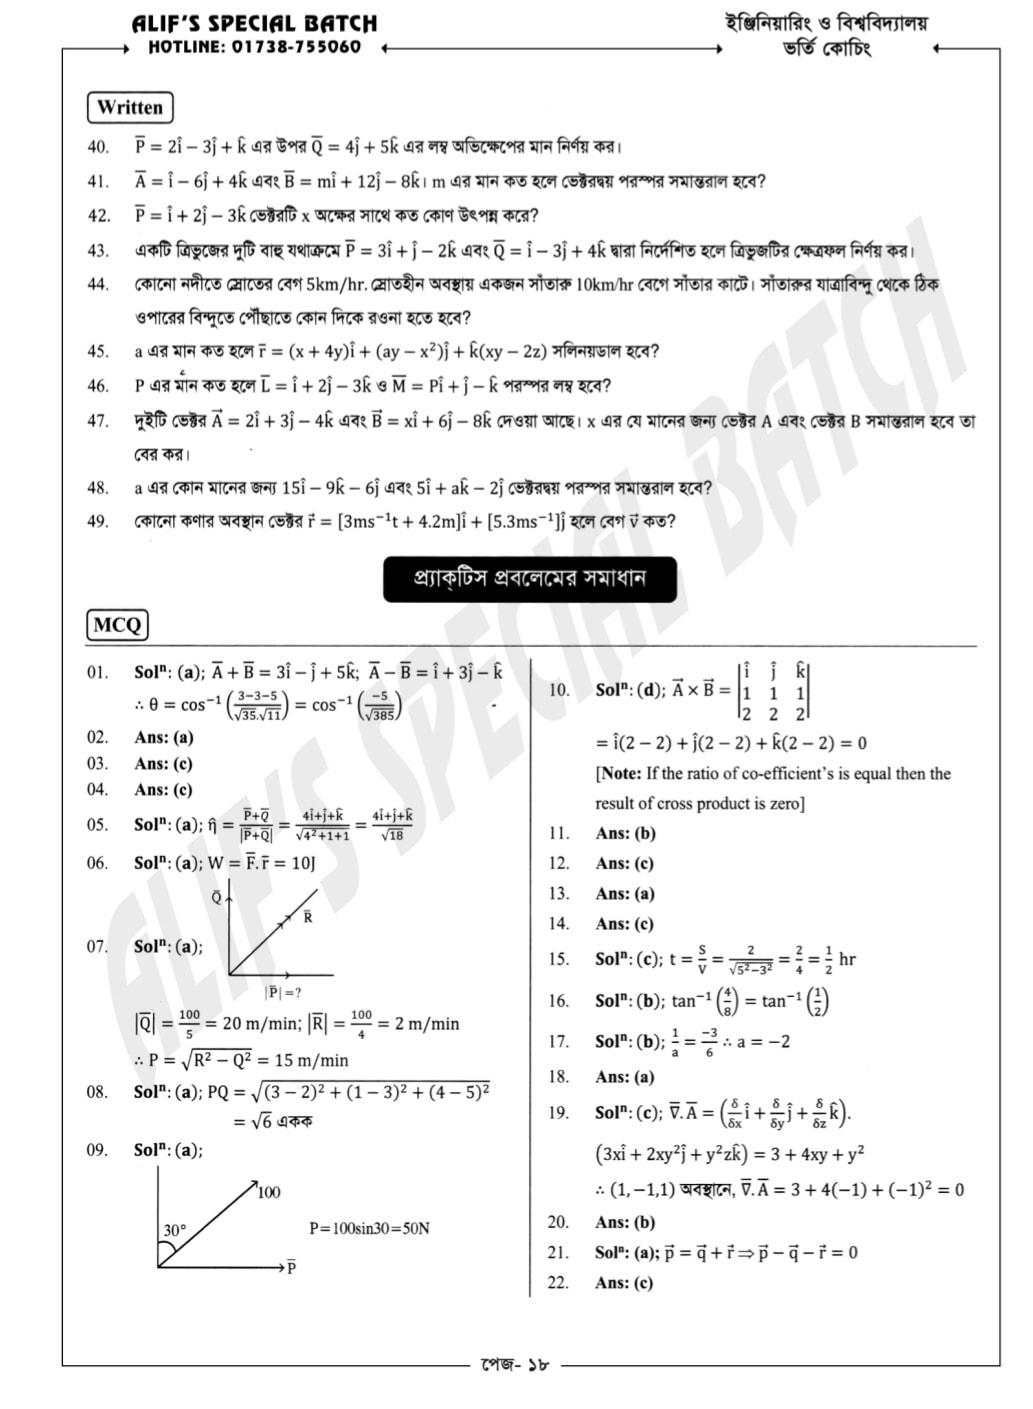 Alif special batch note's download